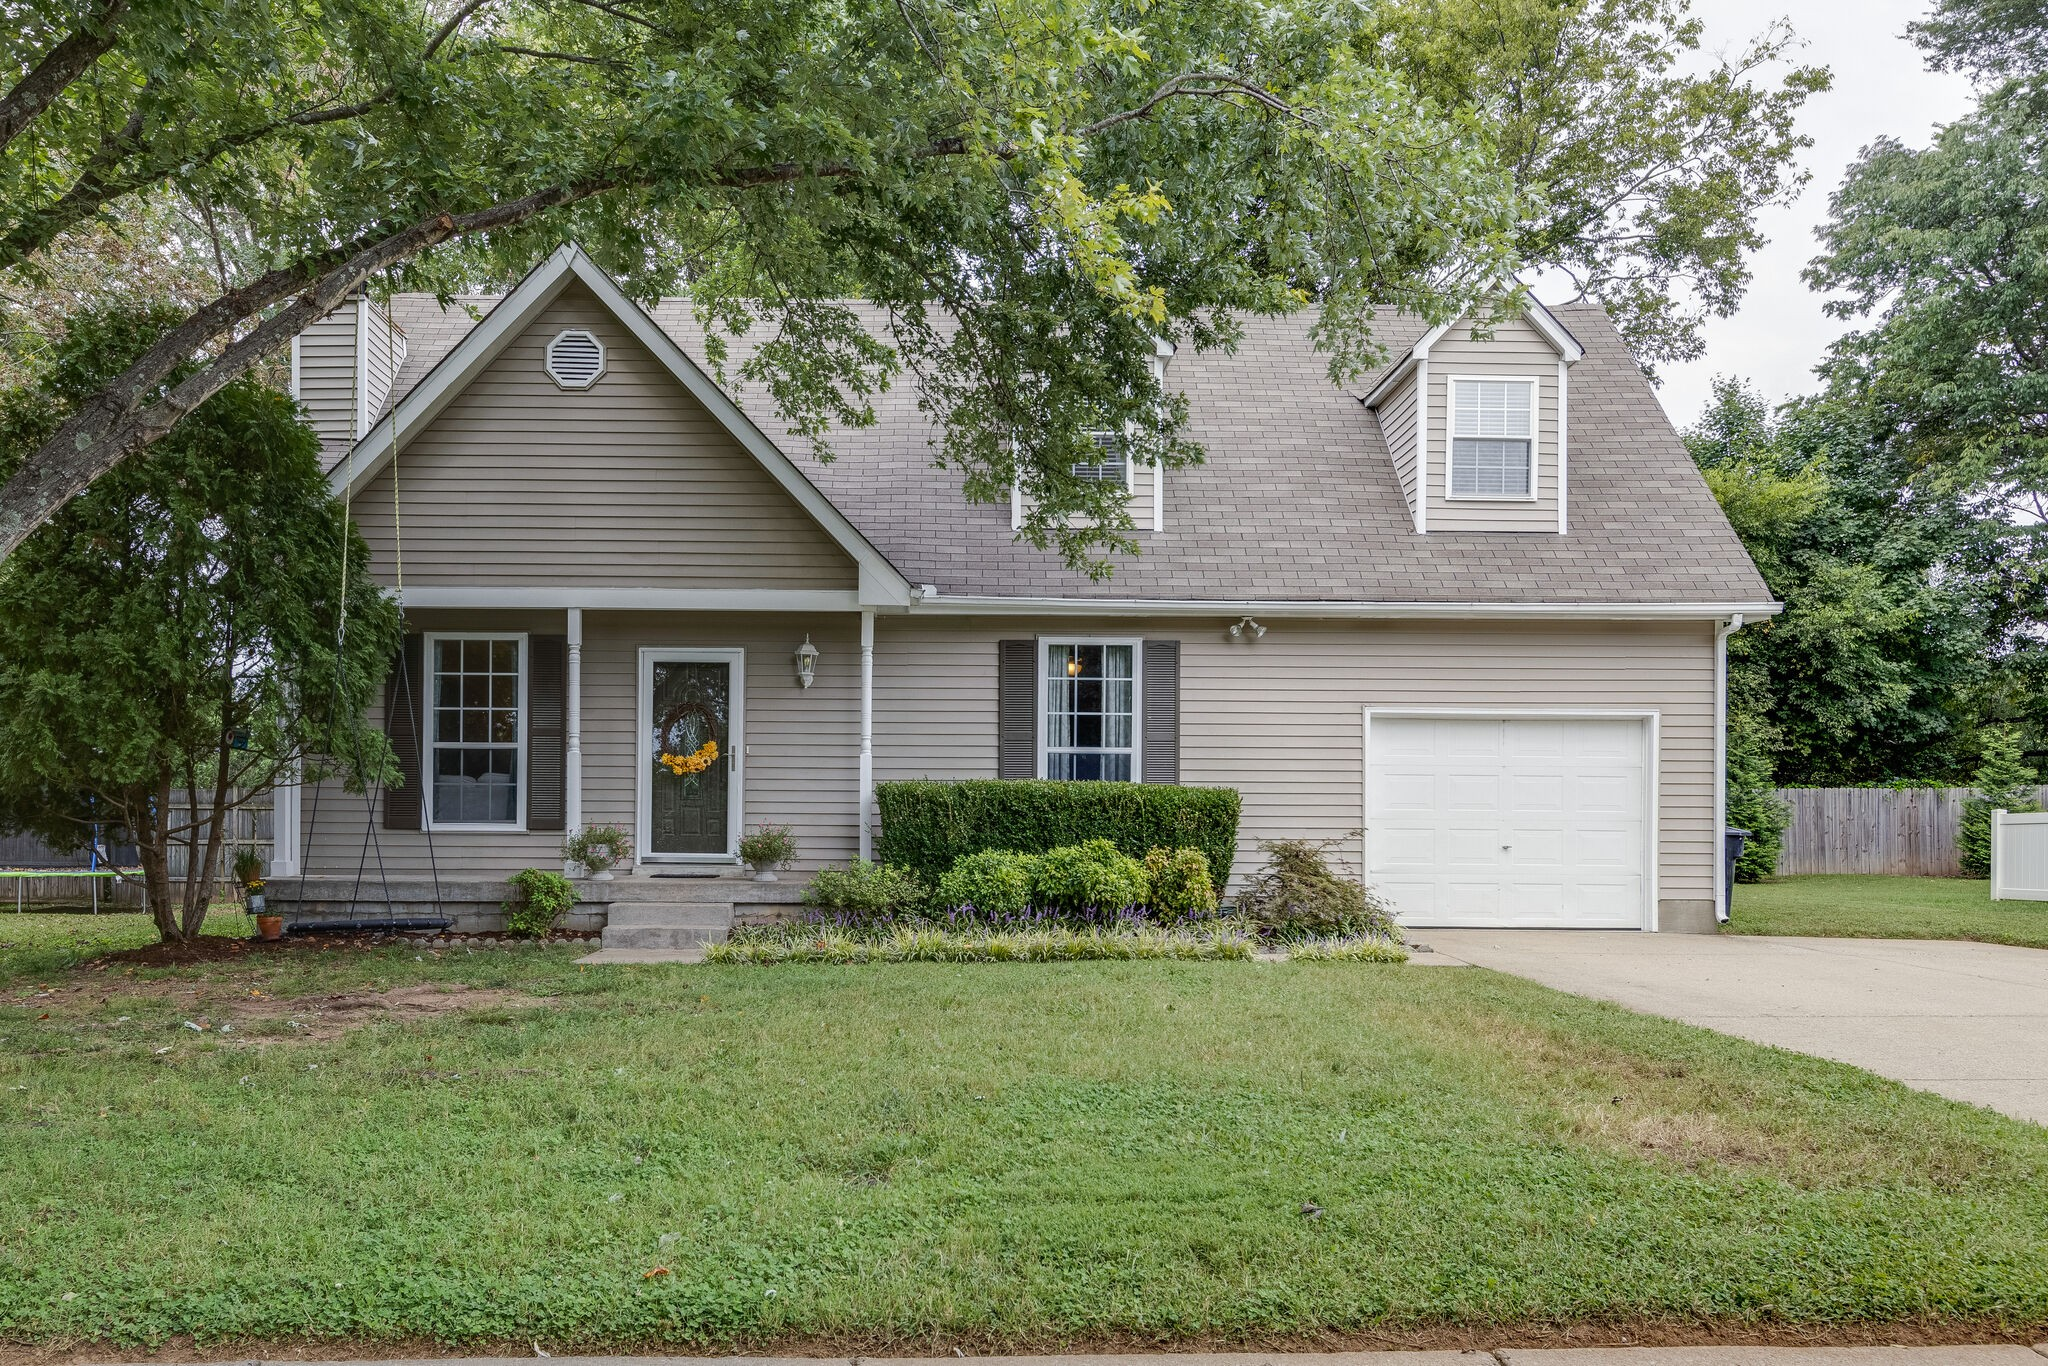 Southern Charmer...Immaculate.Gracious.Lovely...Ready for new owners...Spacious deck overlooks fenced backyard...Within walking distance of Pinkerton Park...All offers are due by Sunday, 9/19/2021, at 8 p.m. Please give until Monday, 9/20/2021, at 8 p.m. for a response. Seller needs to close on or before October 27, 2021, with a possession date of November 6, 2021. All inspections pass/fail.